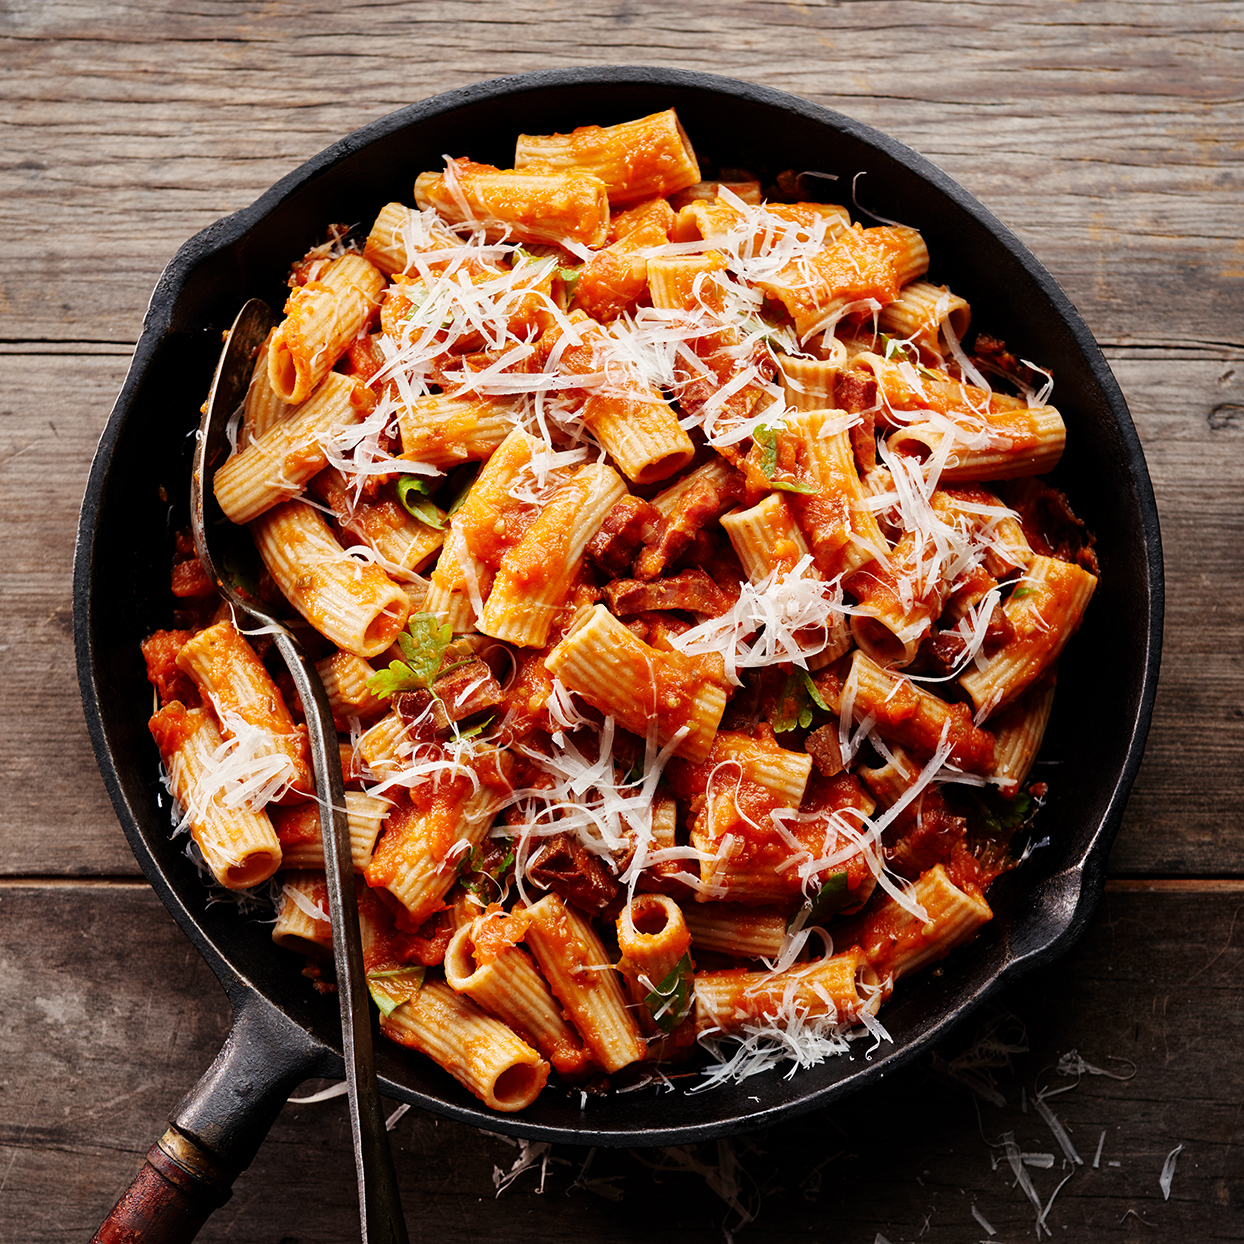 Created by chef Fabio Viviani of Siena Tavern in Chicago, this Amatriciana sauce is a classic of modern Roman cooking (though it most likely came from the town of Amatrice about 90 miles away). Typically, it's made with few ingredients: garlic, guanciale (cured pork jowl), cheese and tomato. This version doctors up jarred sauce to keep it quick and calls for easy-to-find pancetta in place of the guanciale. This tomato sauce is sometimes paired with bucatini; here, Fabio dresses up rigatoni with it.